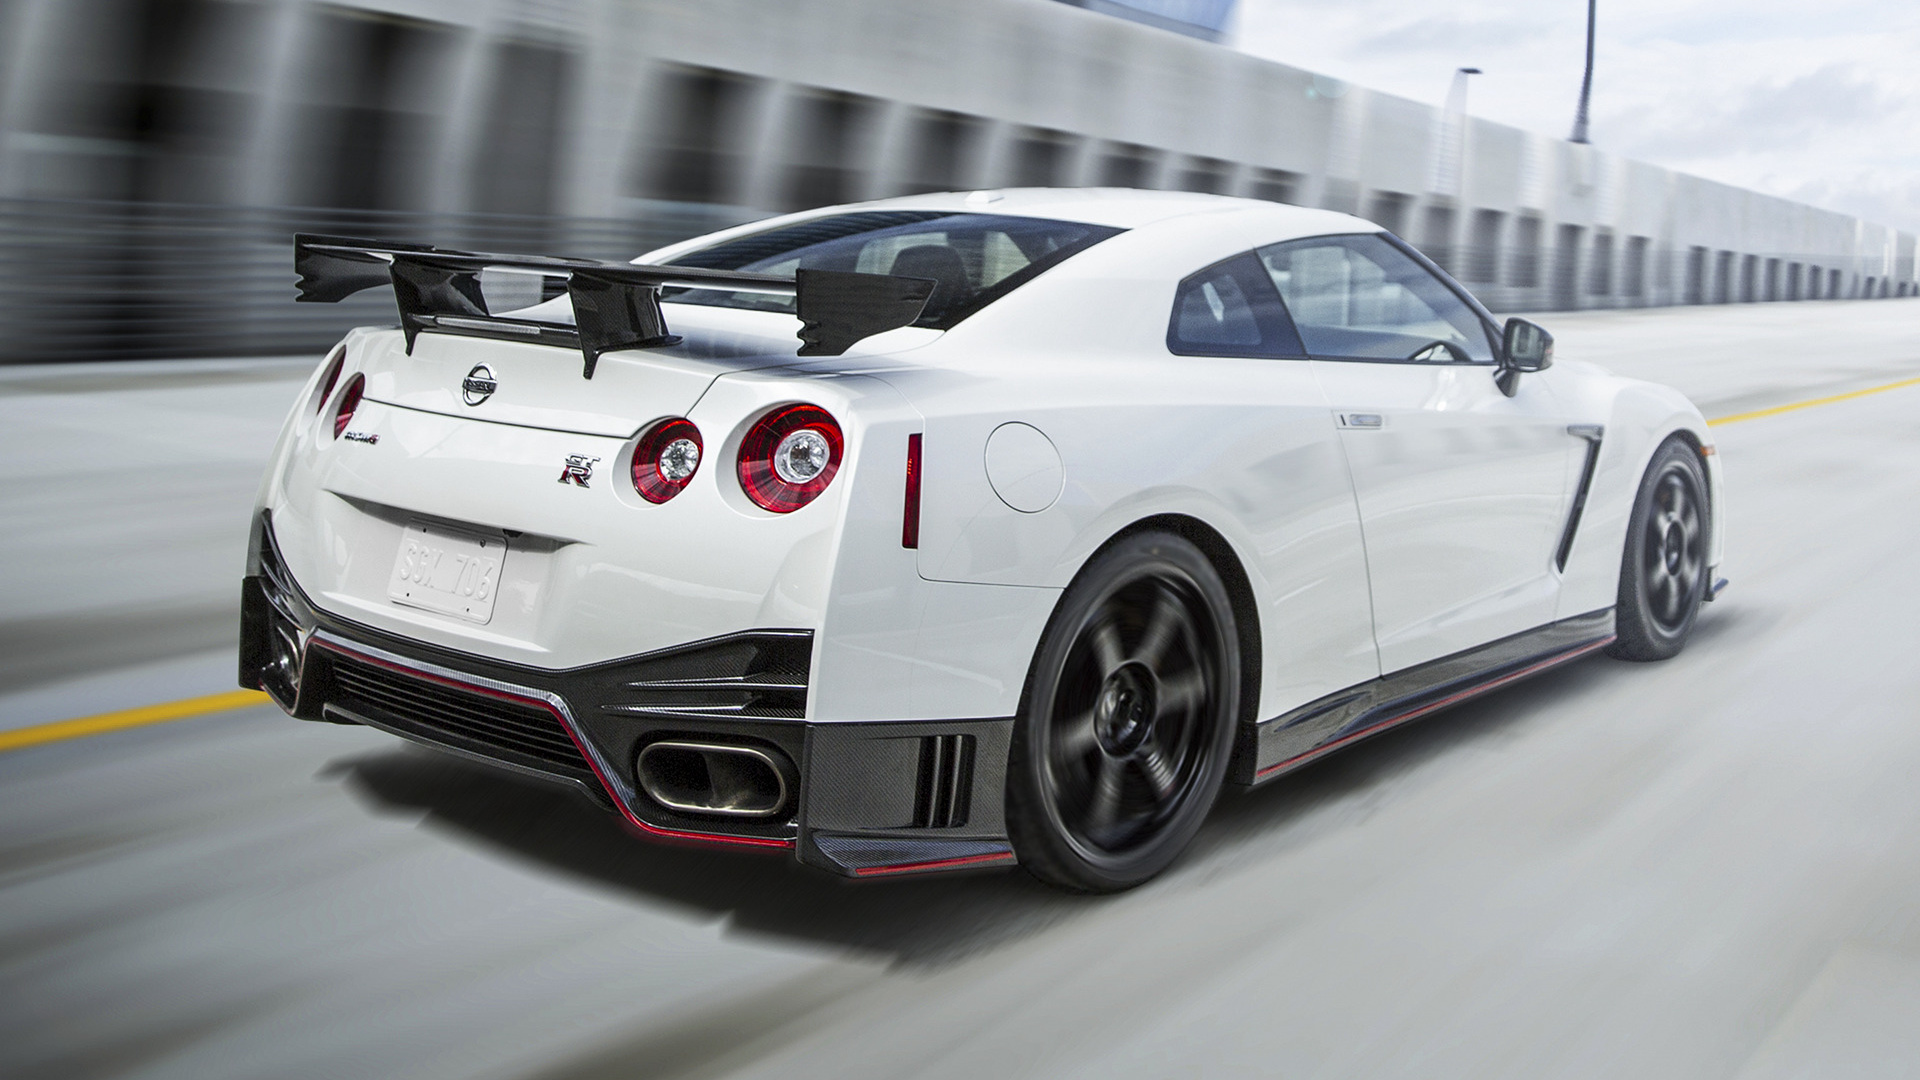 Nissan GT-R GTR Super Sports Racing Car NGT02 POSTER print A4 A3 buy 2 get 1FREE